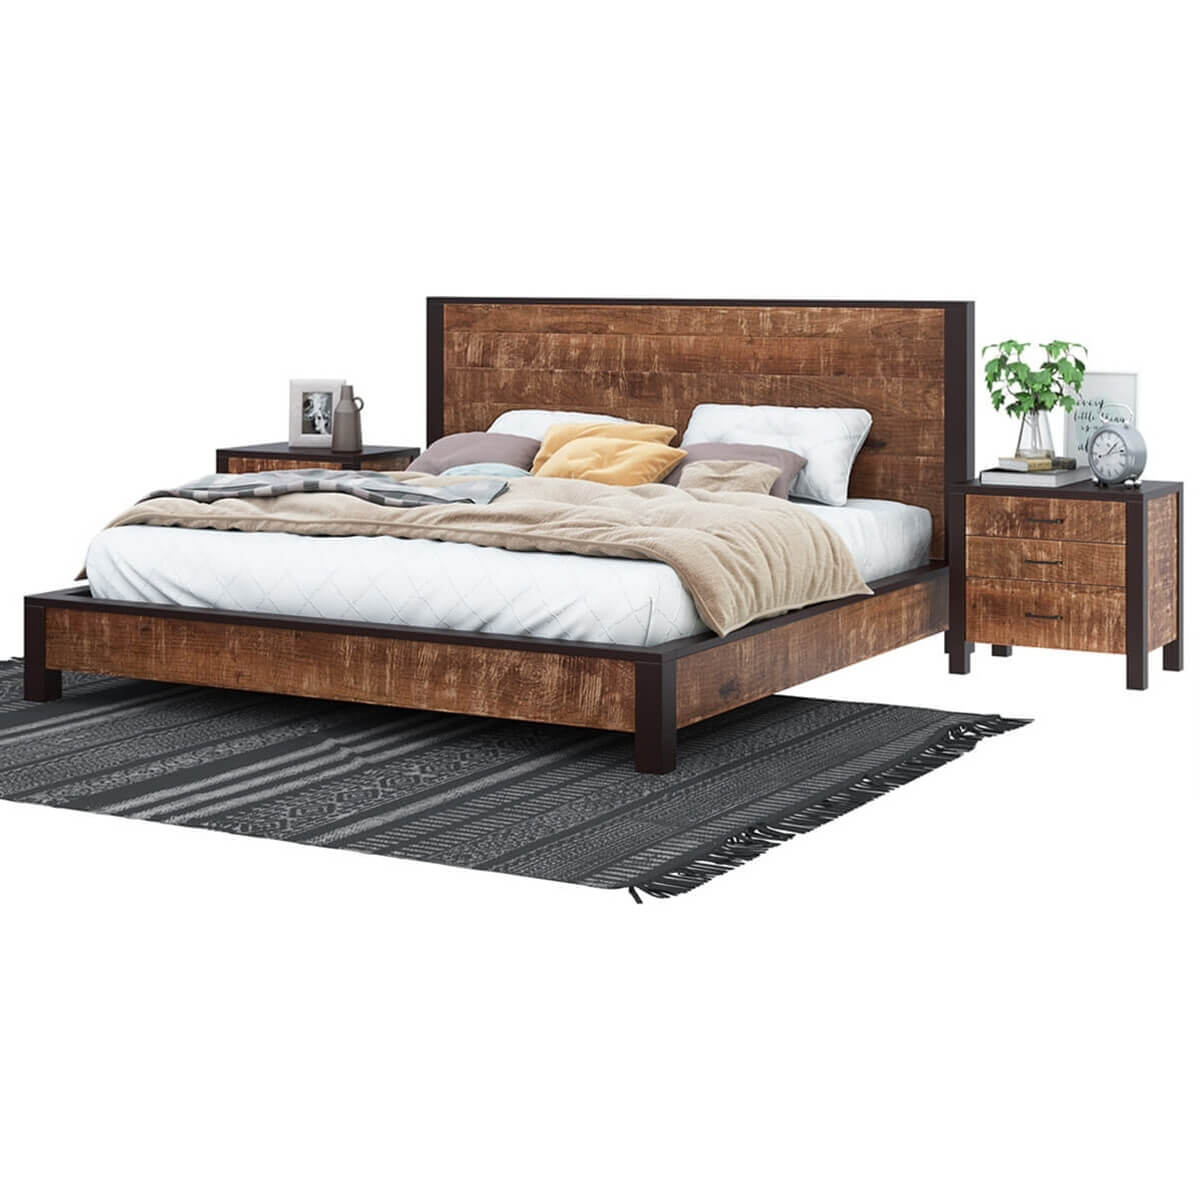 Headboard And Footboard Frame Fb1512 Upholstered Bed